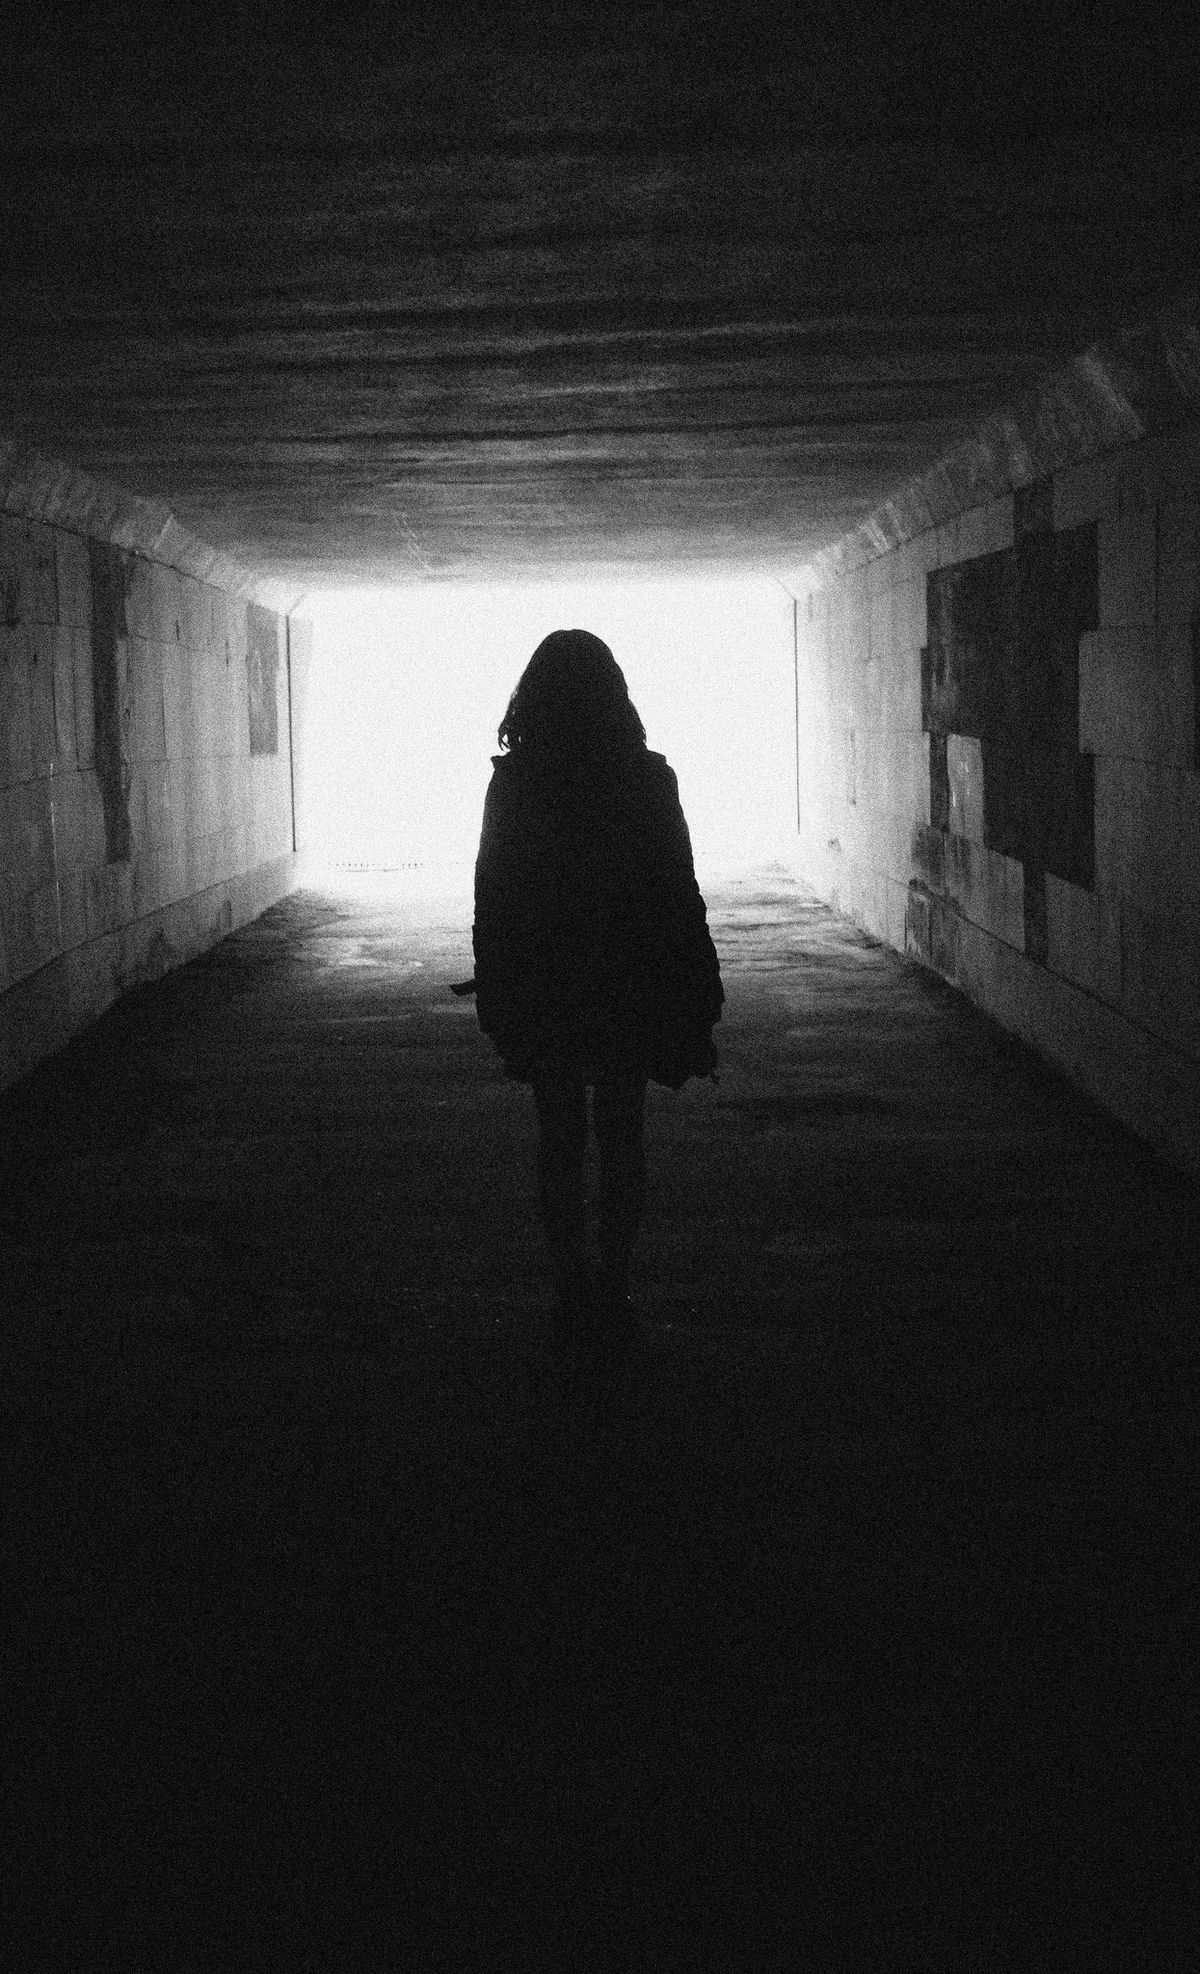 An Assault, An Anniversary, A Cry: The Story Of My Sexual Assault